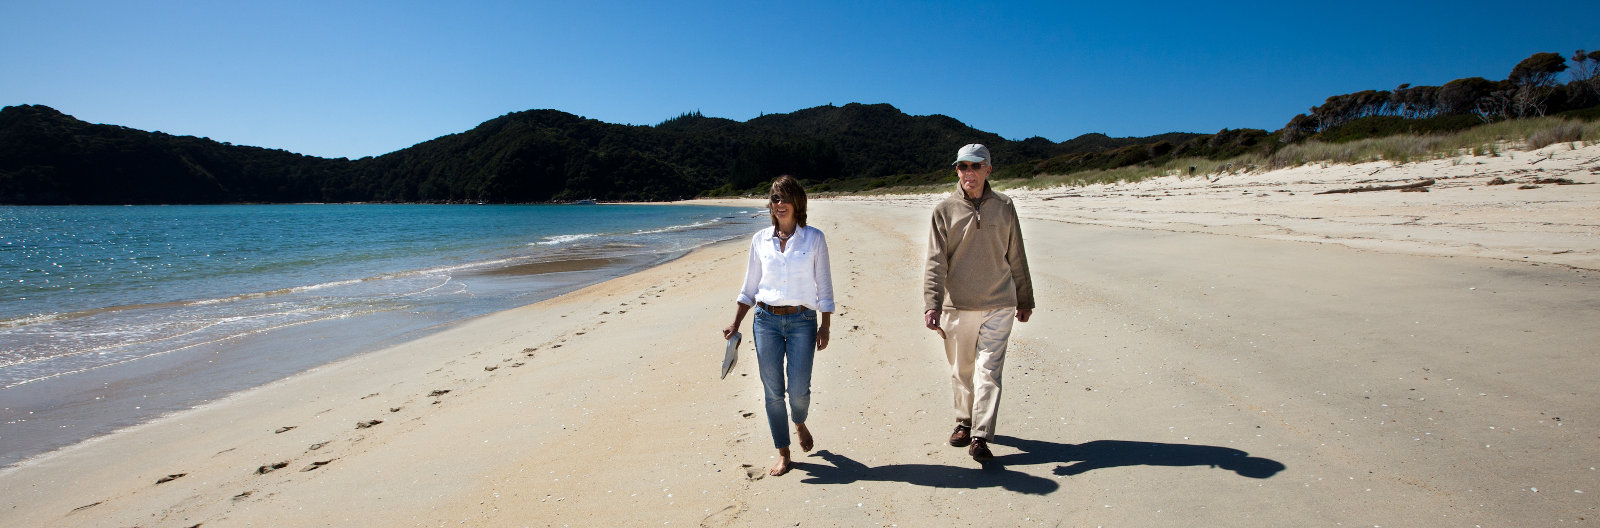 Couple walking on the beach at Awaroa - Abel Tasman NP, NZ.